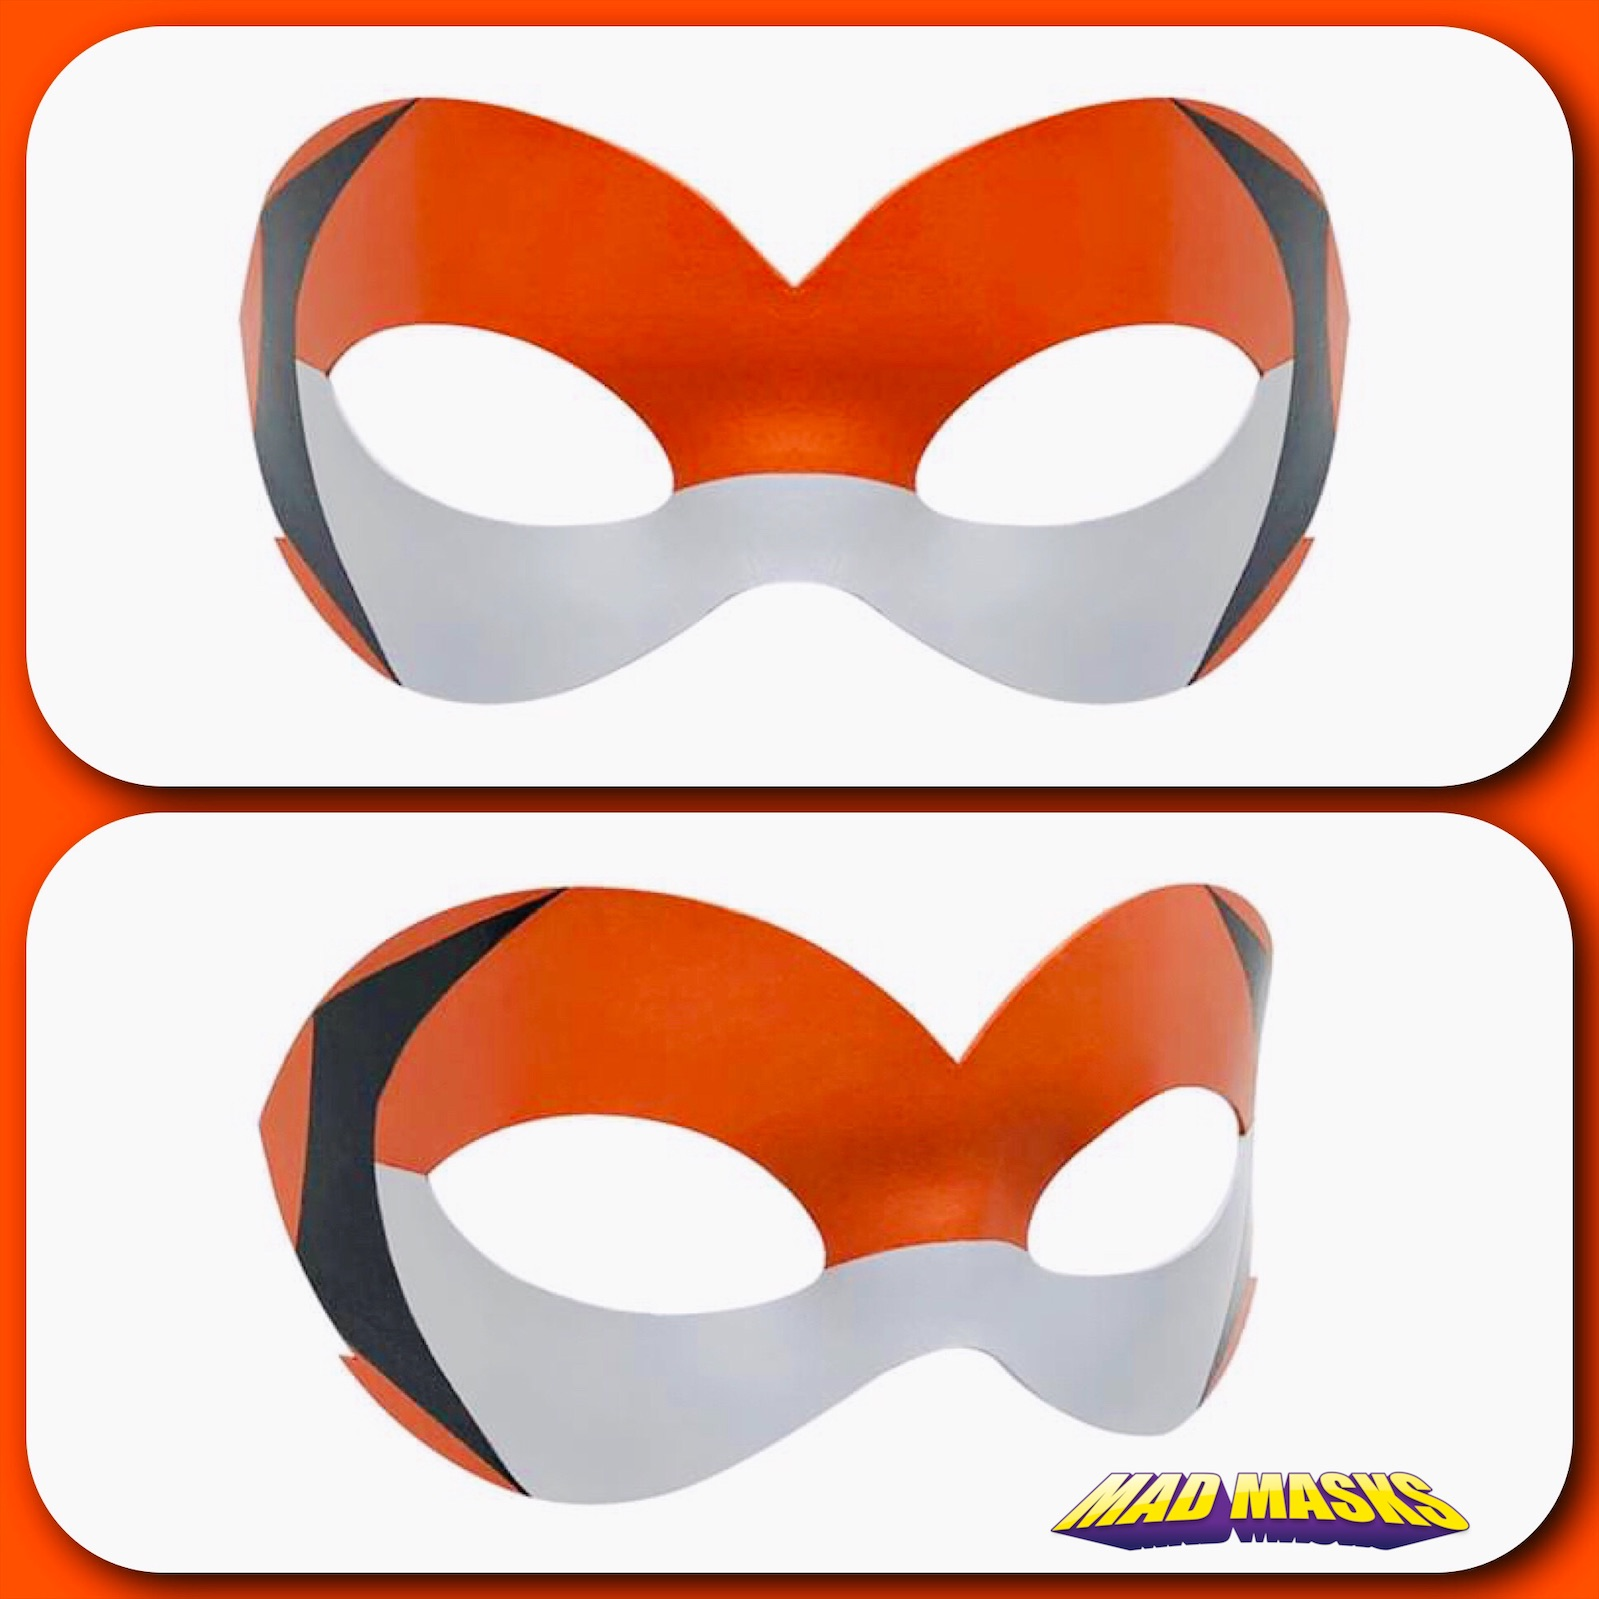 multifox-mask-mad-masks.jpg